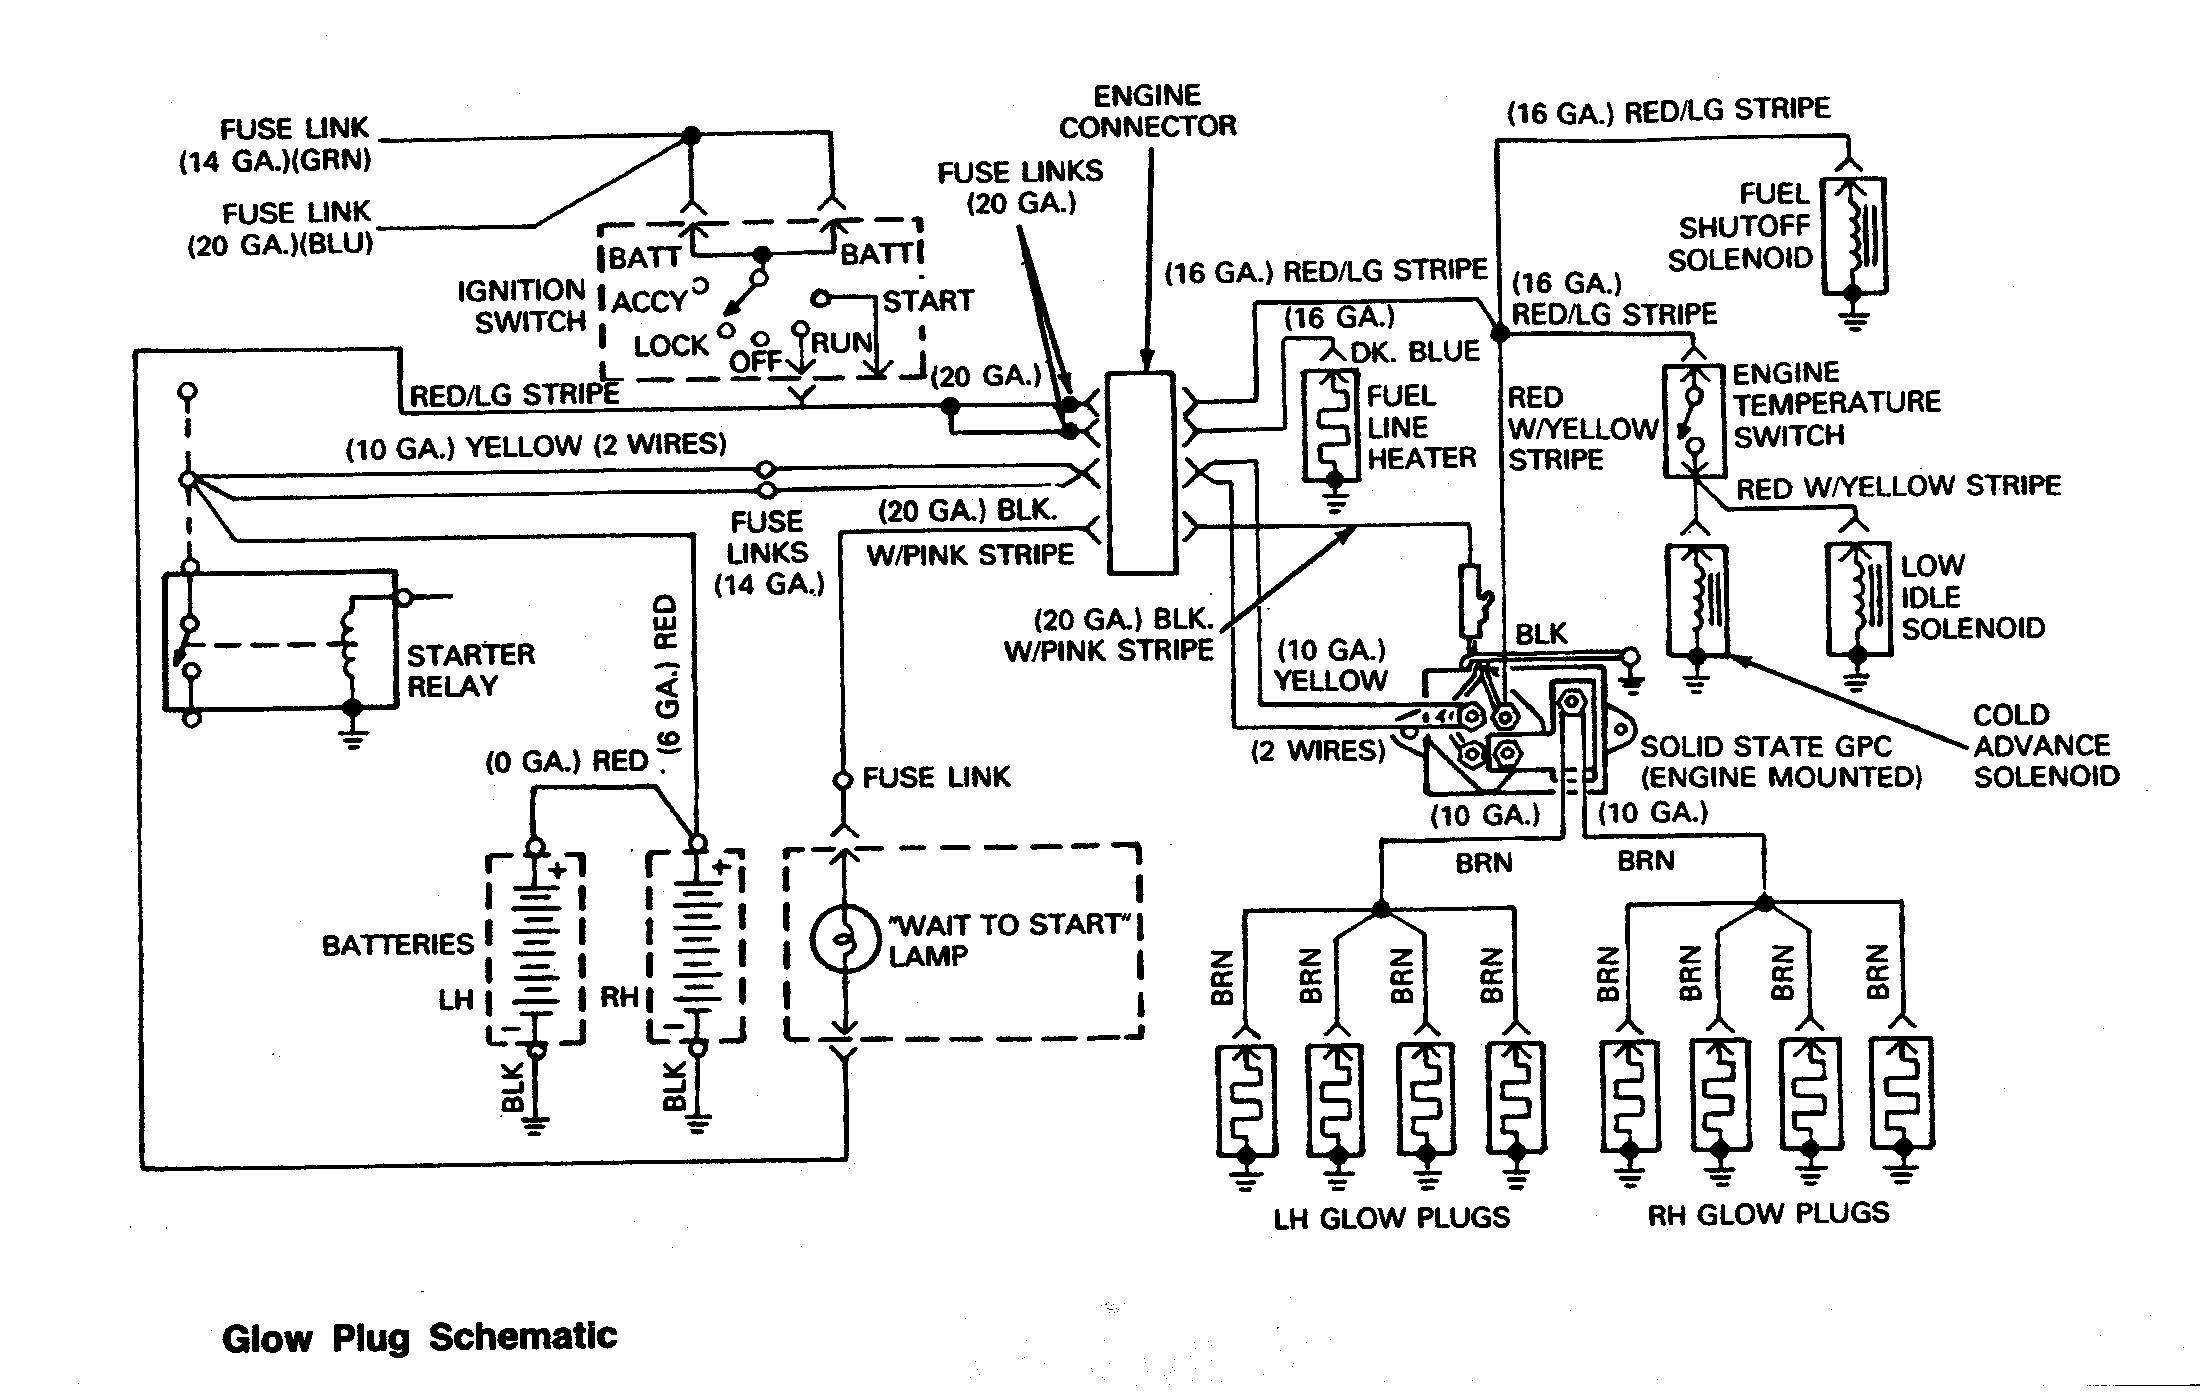 Yanmar Marine Engine Wiring Diagram Page 4 And 2gm Sel Alternator Davehaynes Me Source Looking For Boat Stereo Olane Rh Olanecuis Blo Com